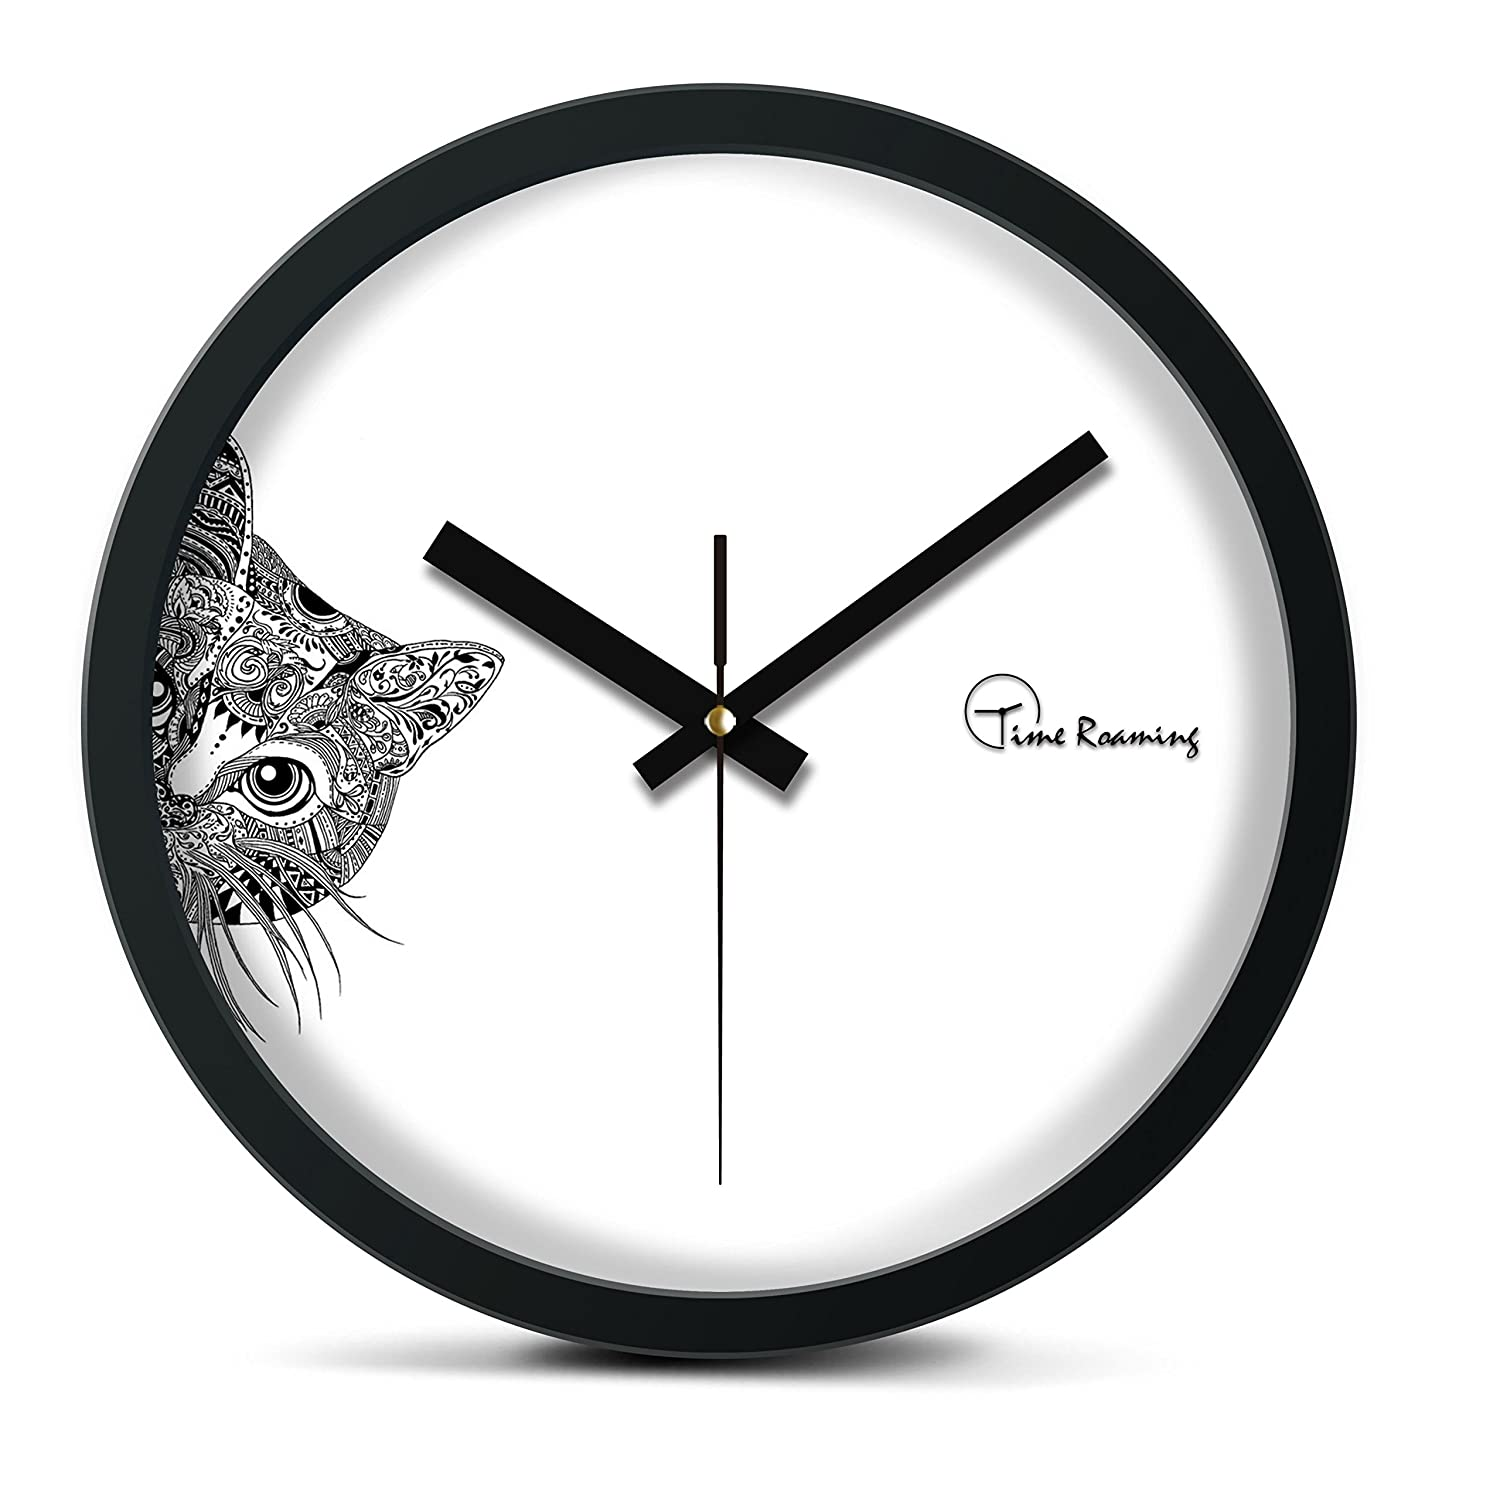 Amazon time roaming 10 modern decor silent metal wall clock amazon time roaming 10 modern decor silent metal wall clock peep cat home kitchen amipublicfo Image collections